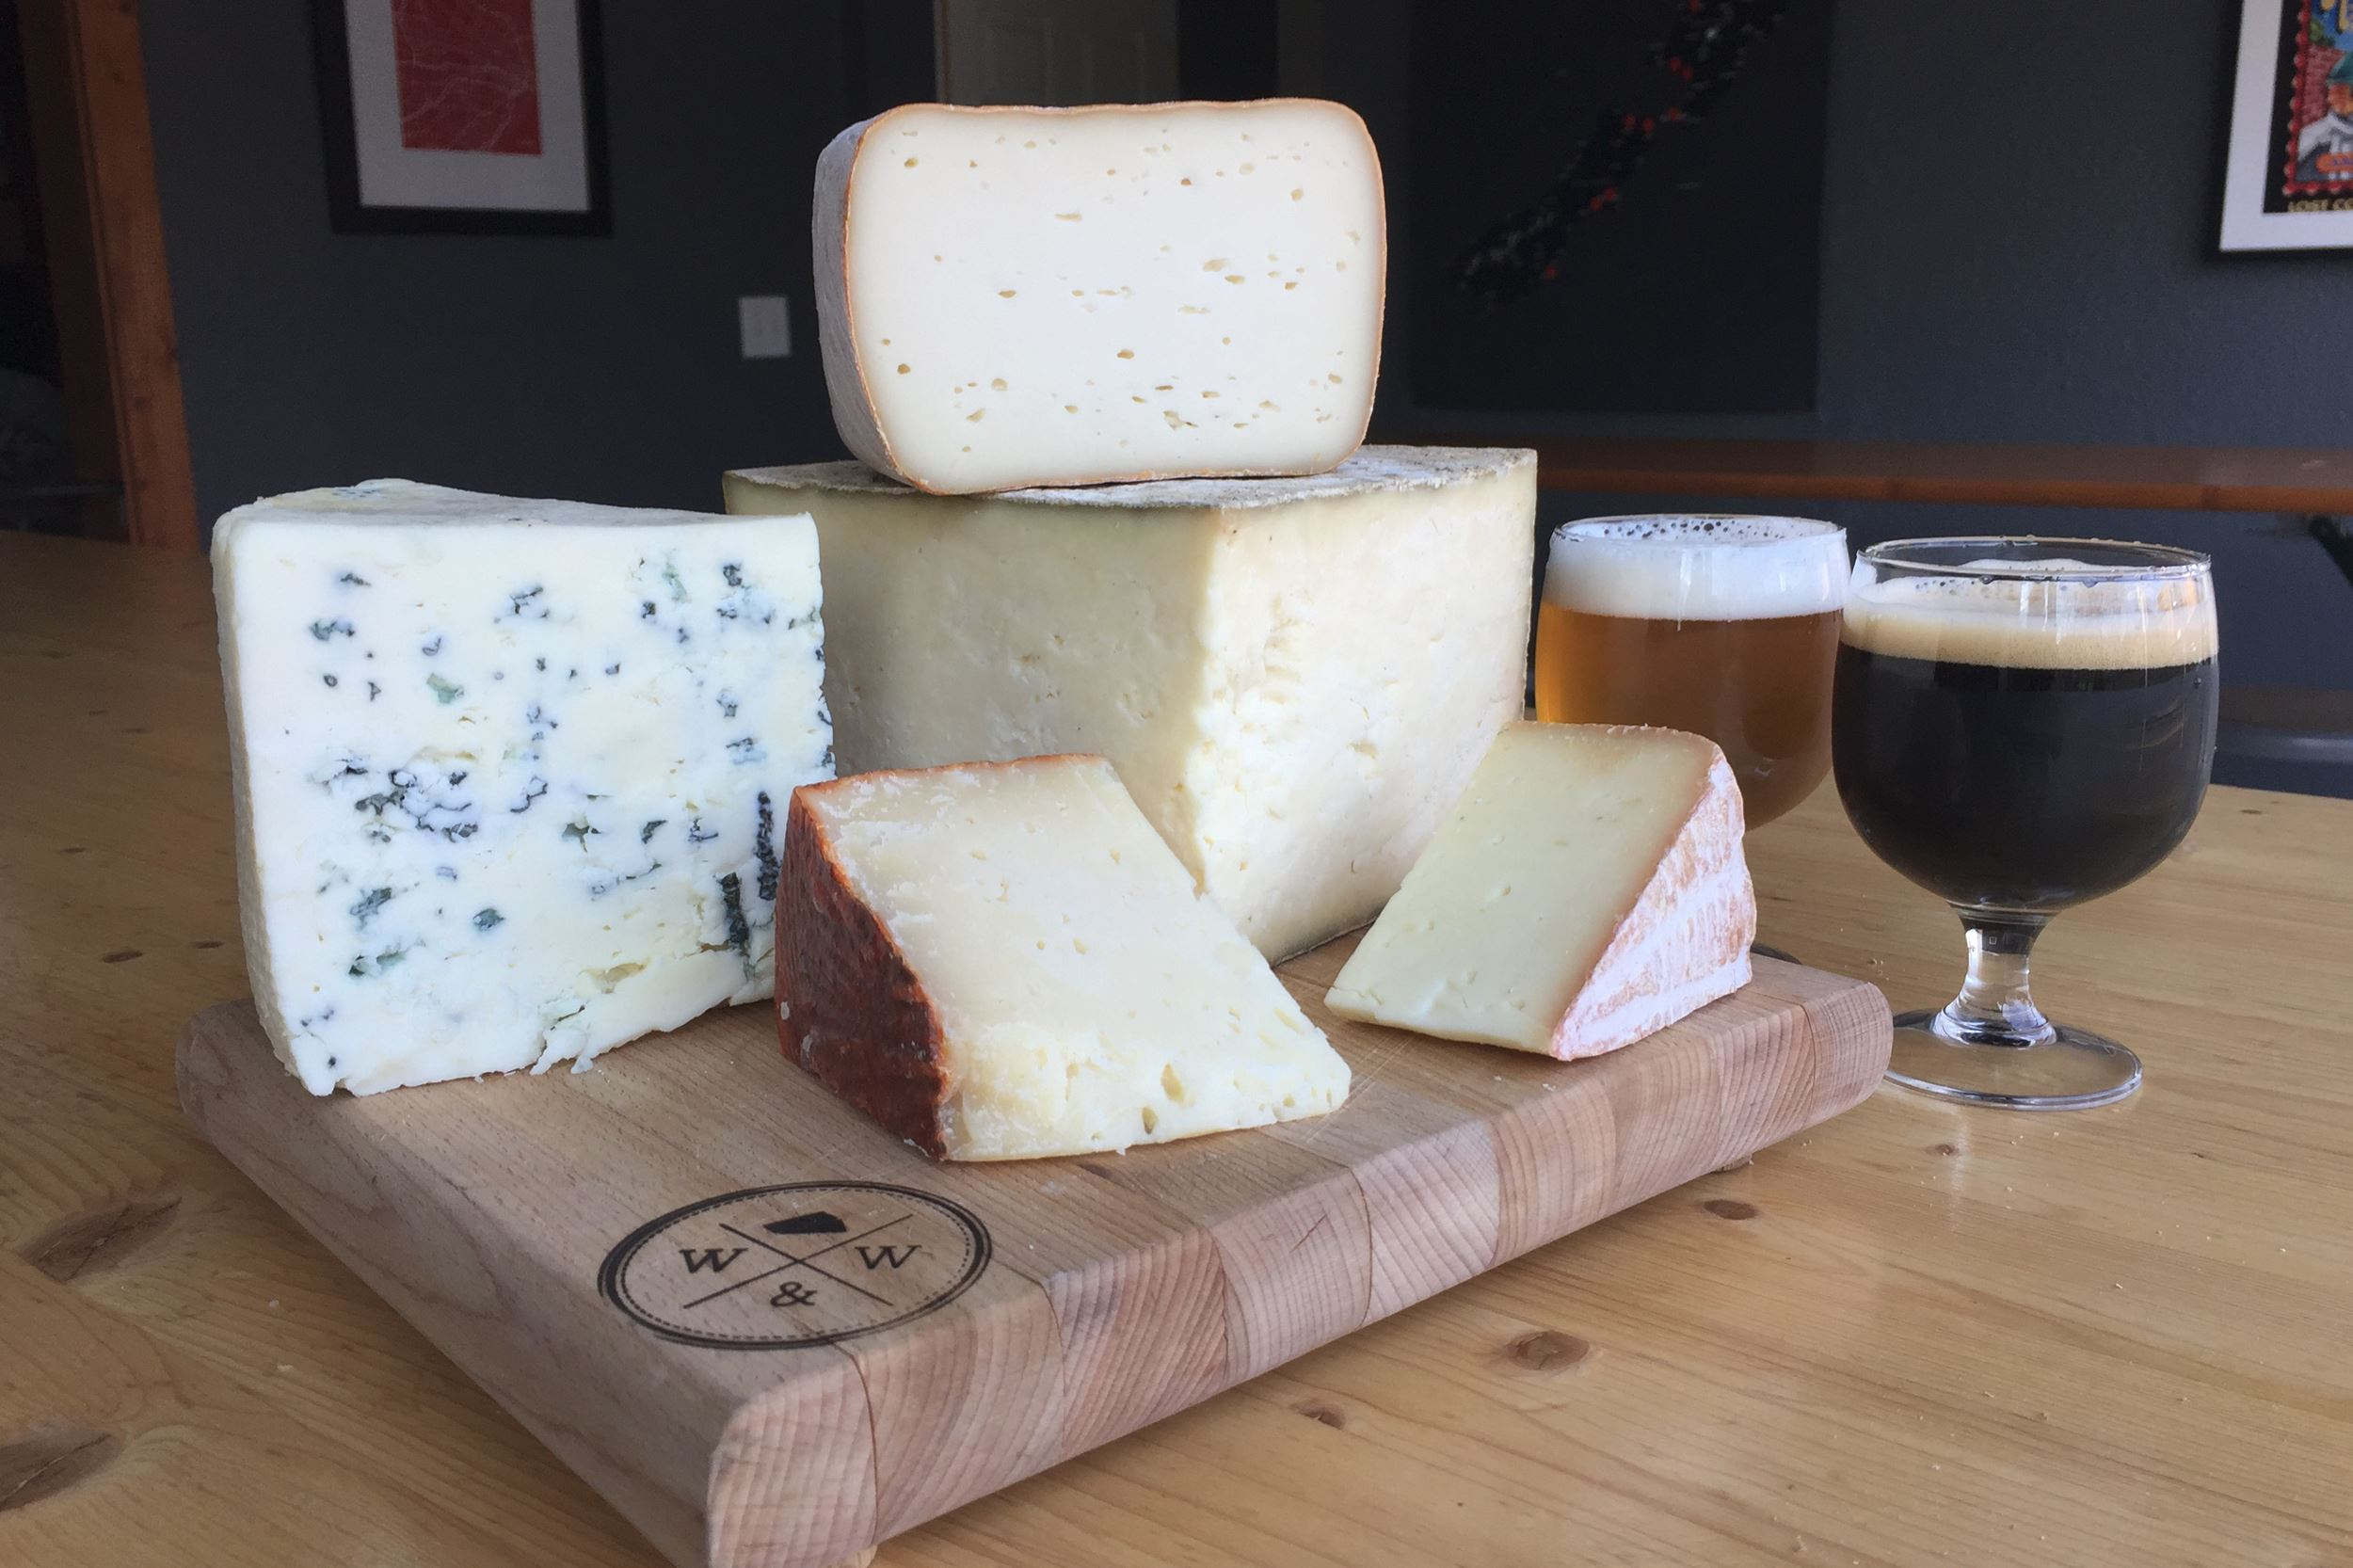 20151211hdCheese01Food From left the cheeses are: Ba Ba Blue, Landaff, Bamboozle, Gran Queso and Tomme de Ewe. The beers from Roundabout Brewery are Azacca IPA and Simply Stout.